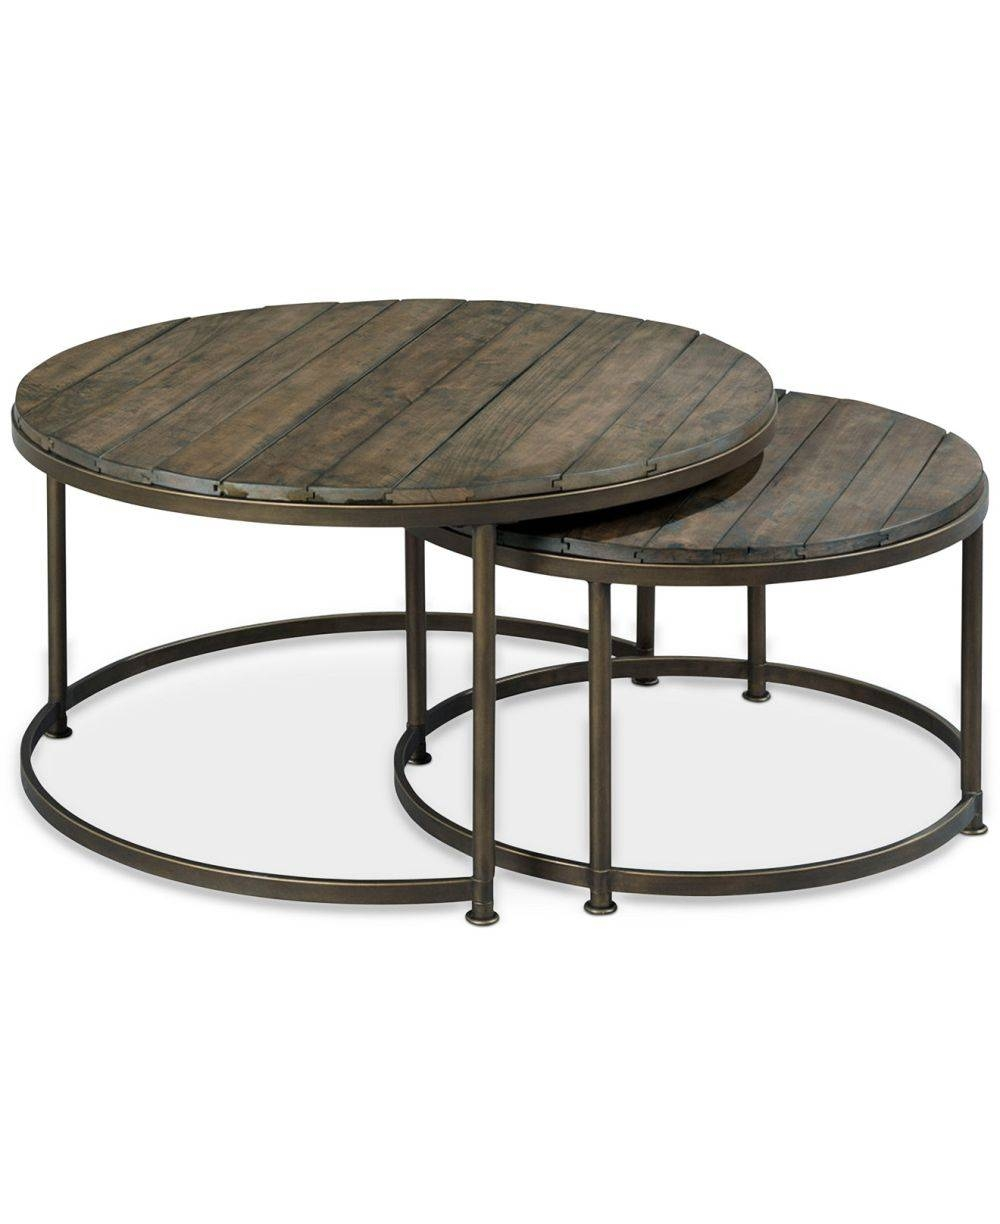 Make The Living Room Sleek With Round Metal Coffee Table inside Round Metal Coffee Tables (Image 6 of 15)